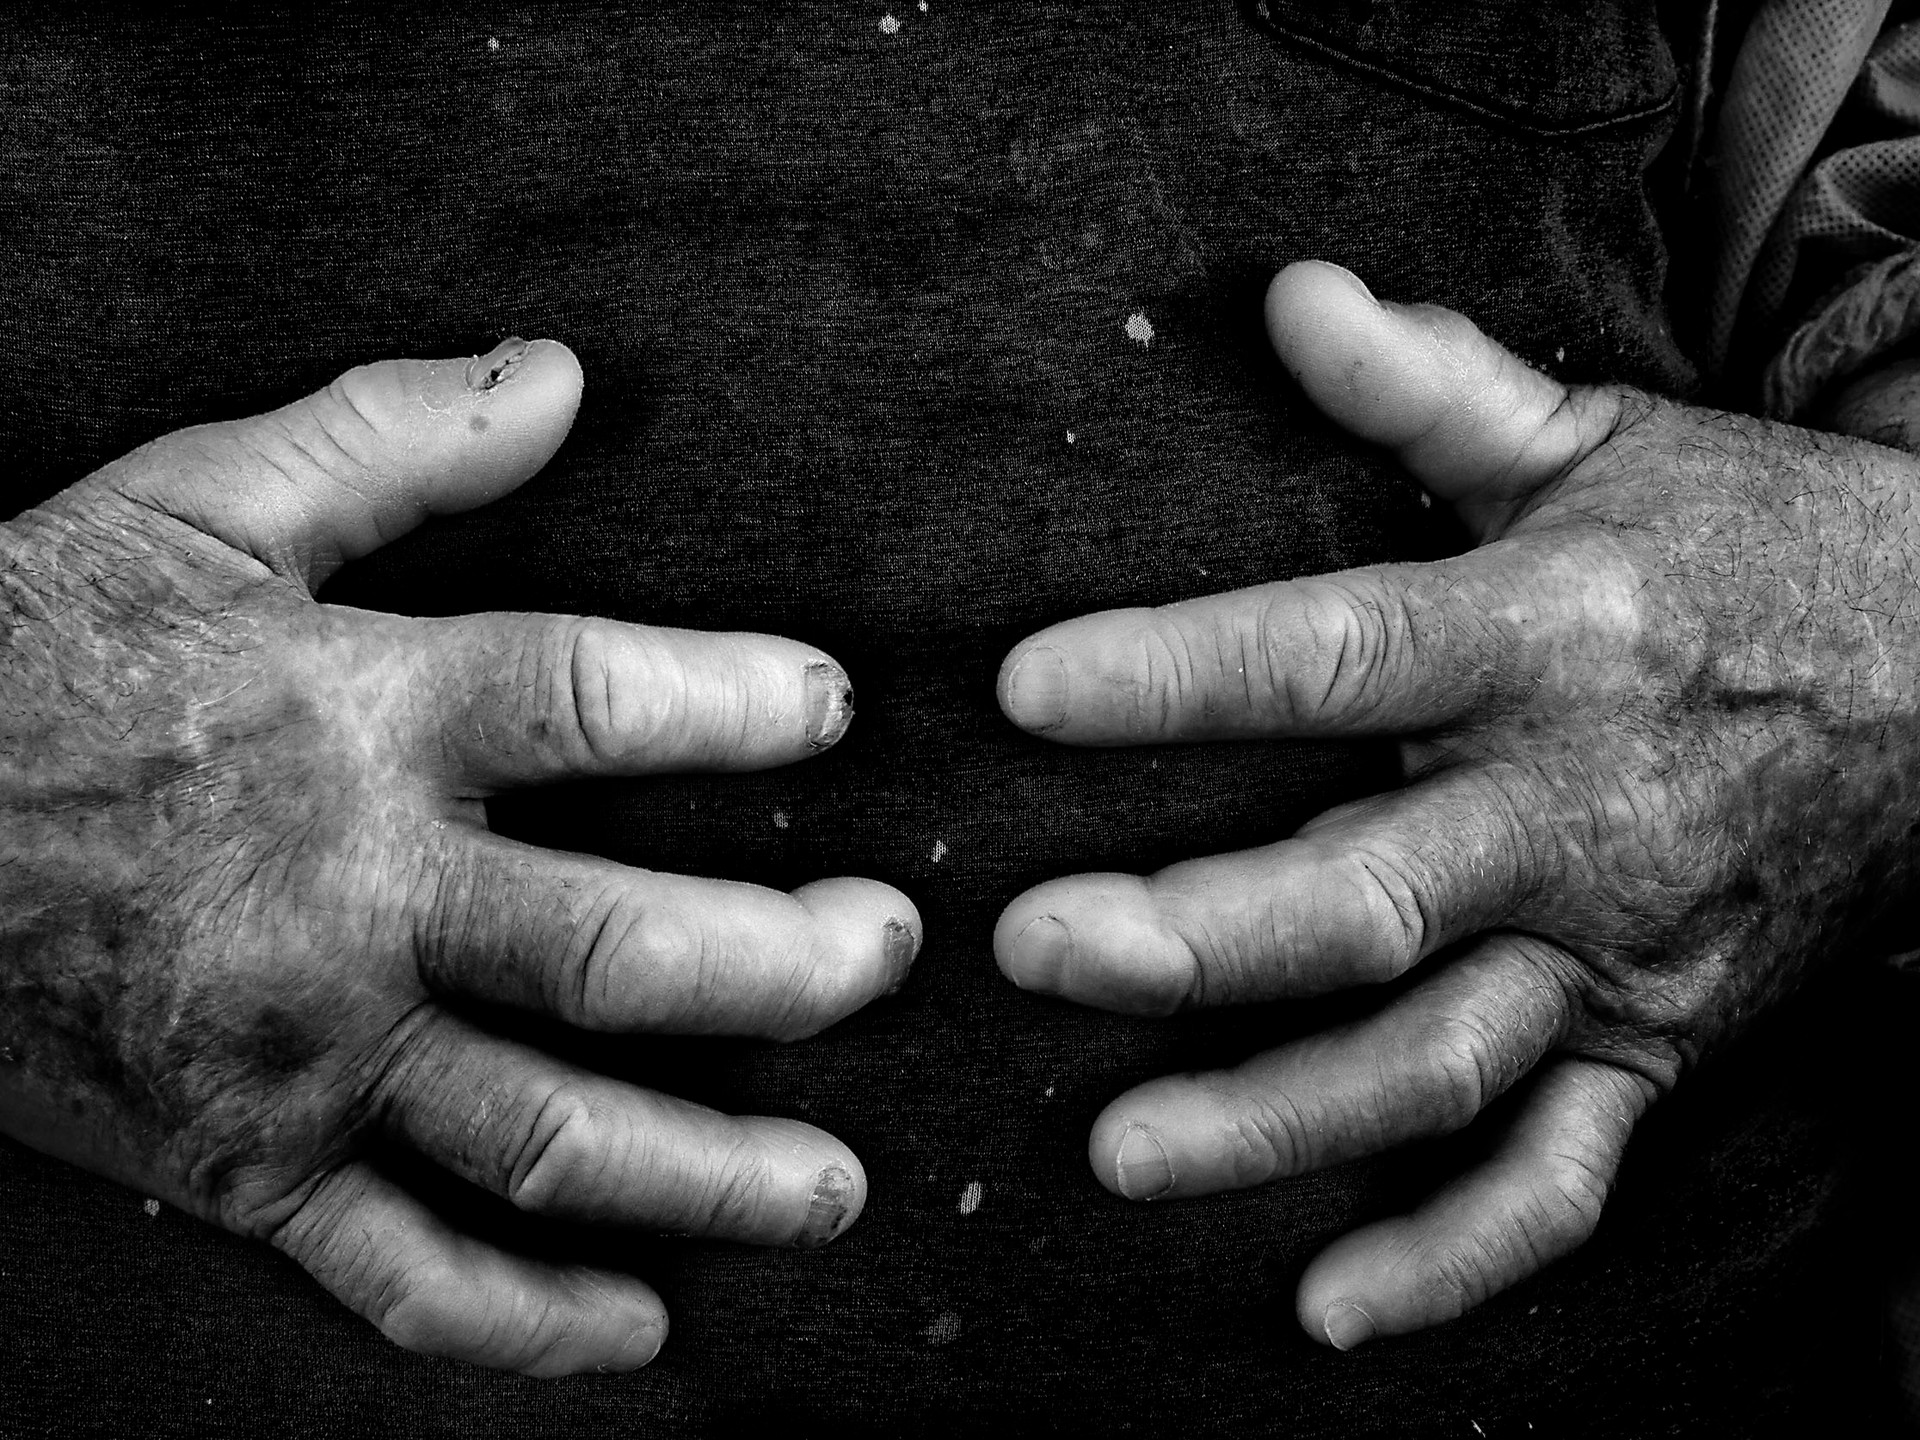 """the painful toil of our hands.""- Genesis 5:29"